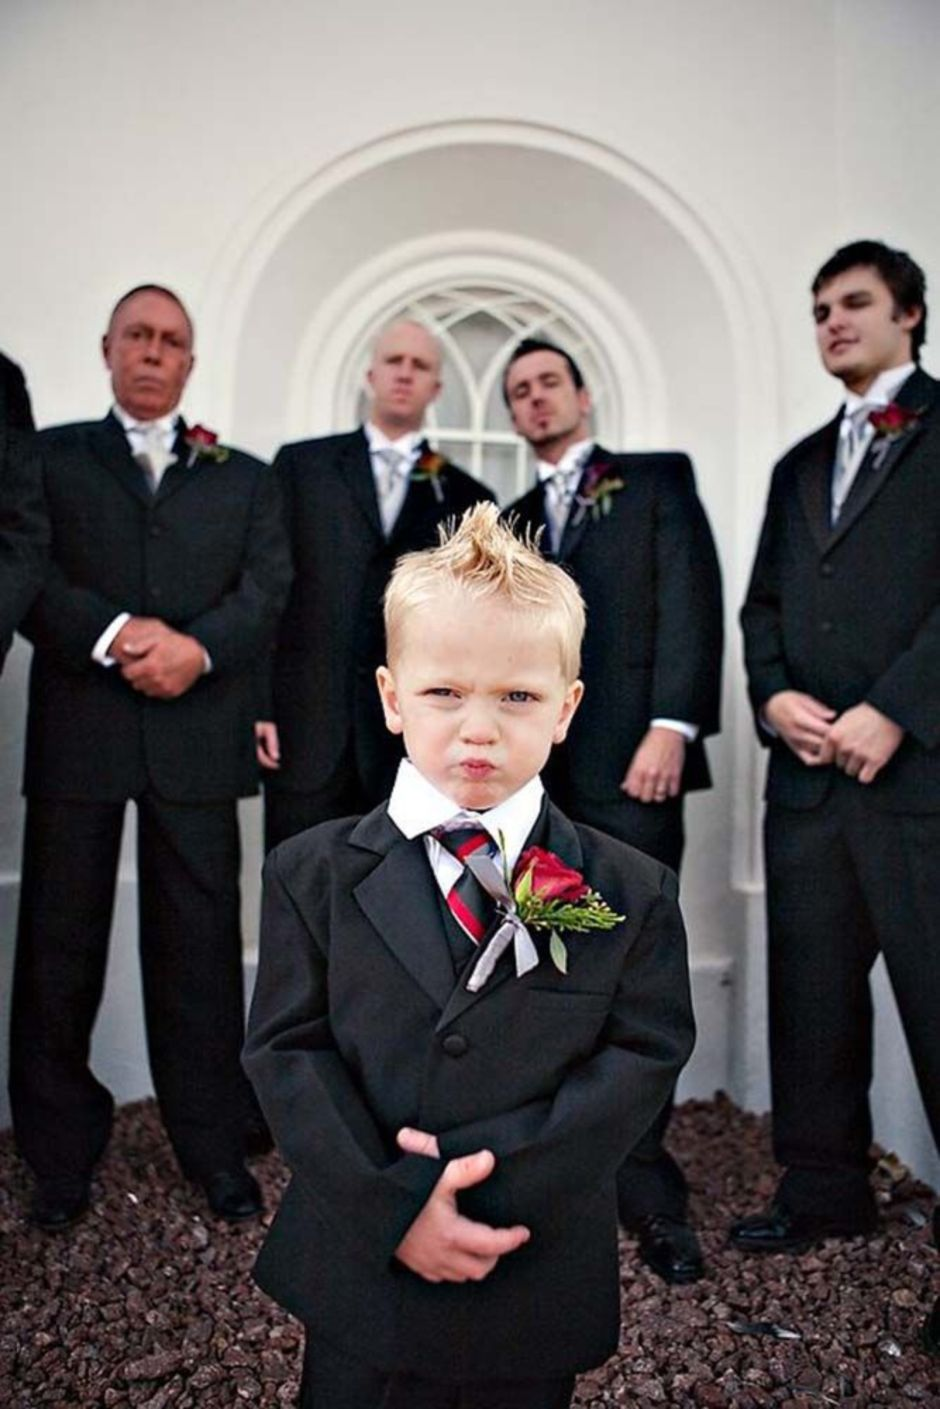 100+ Groomsmen Photos Poses Ideas You Can't Miss 105